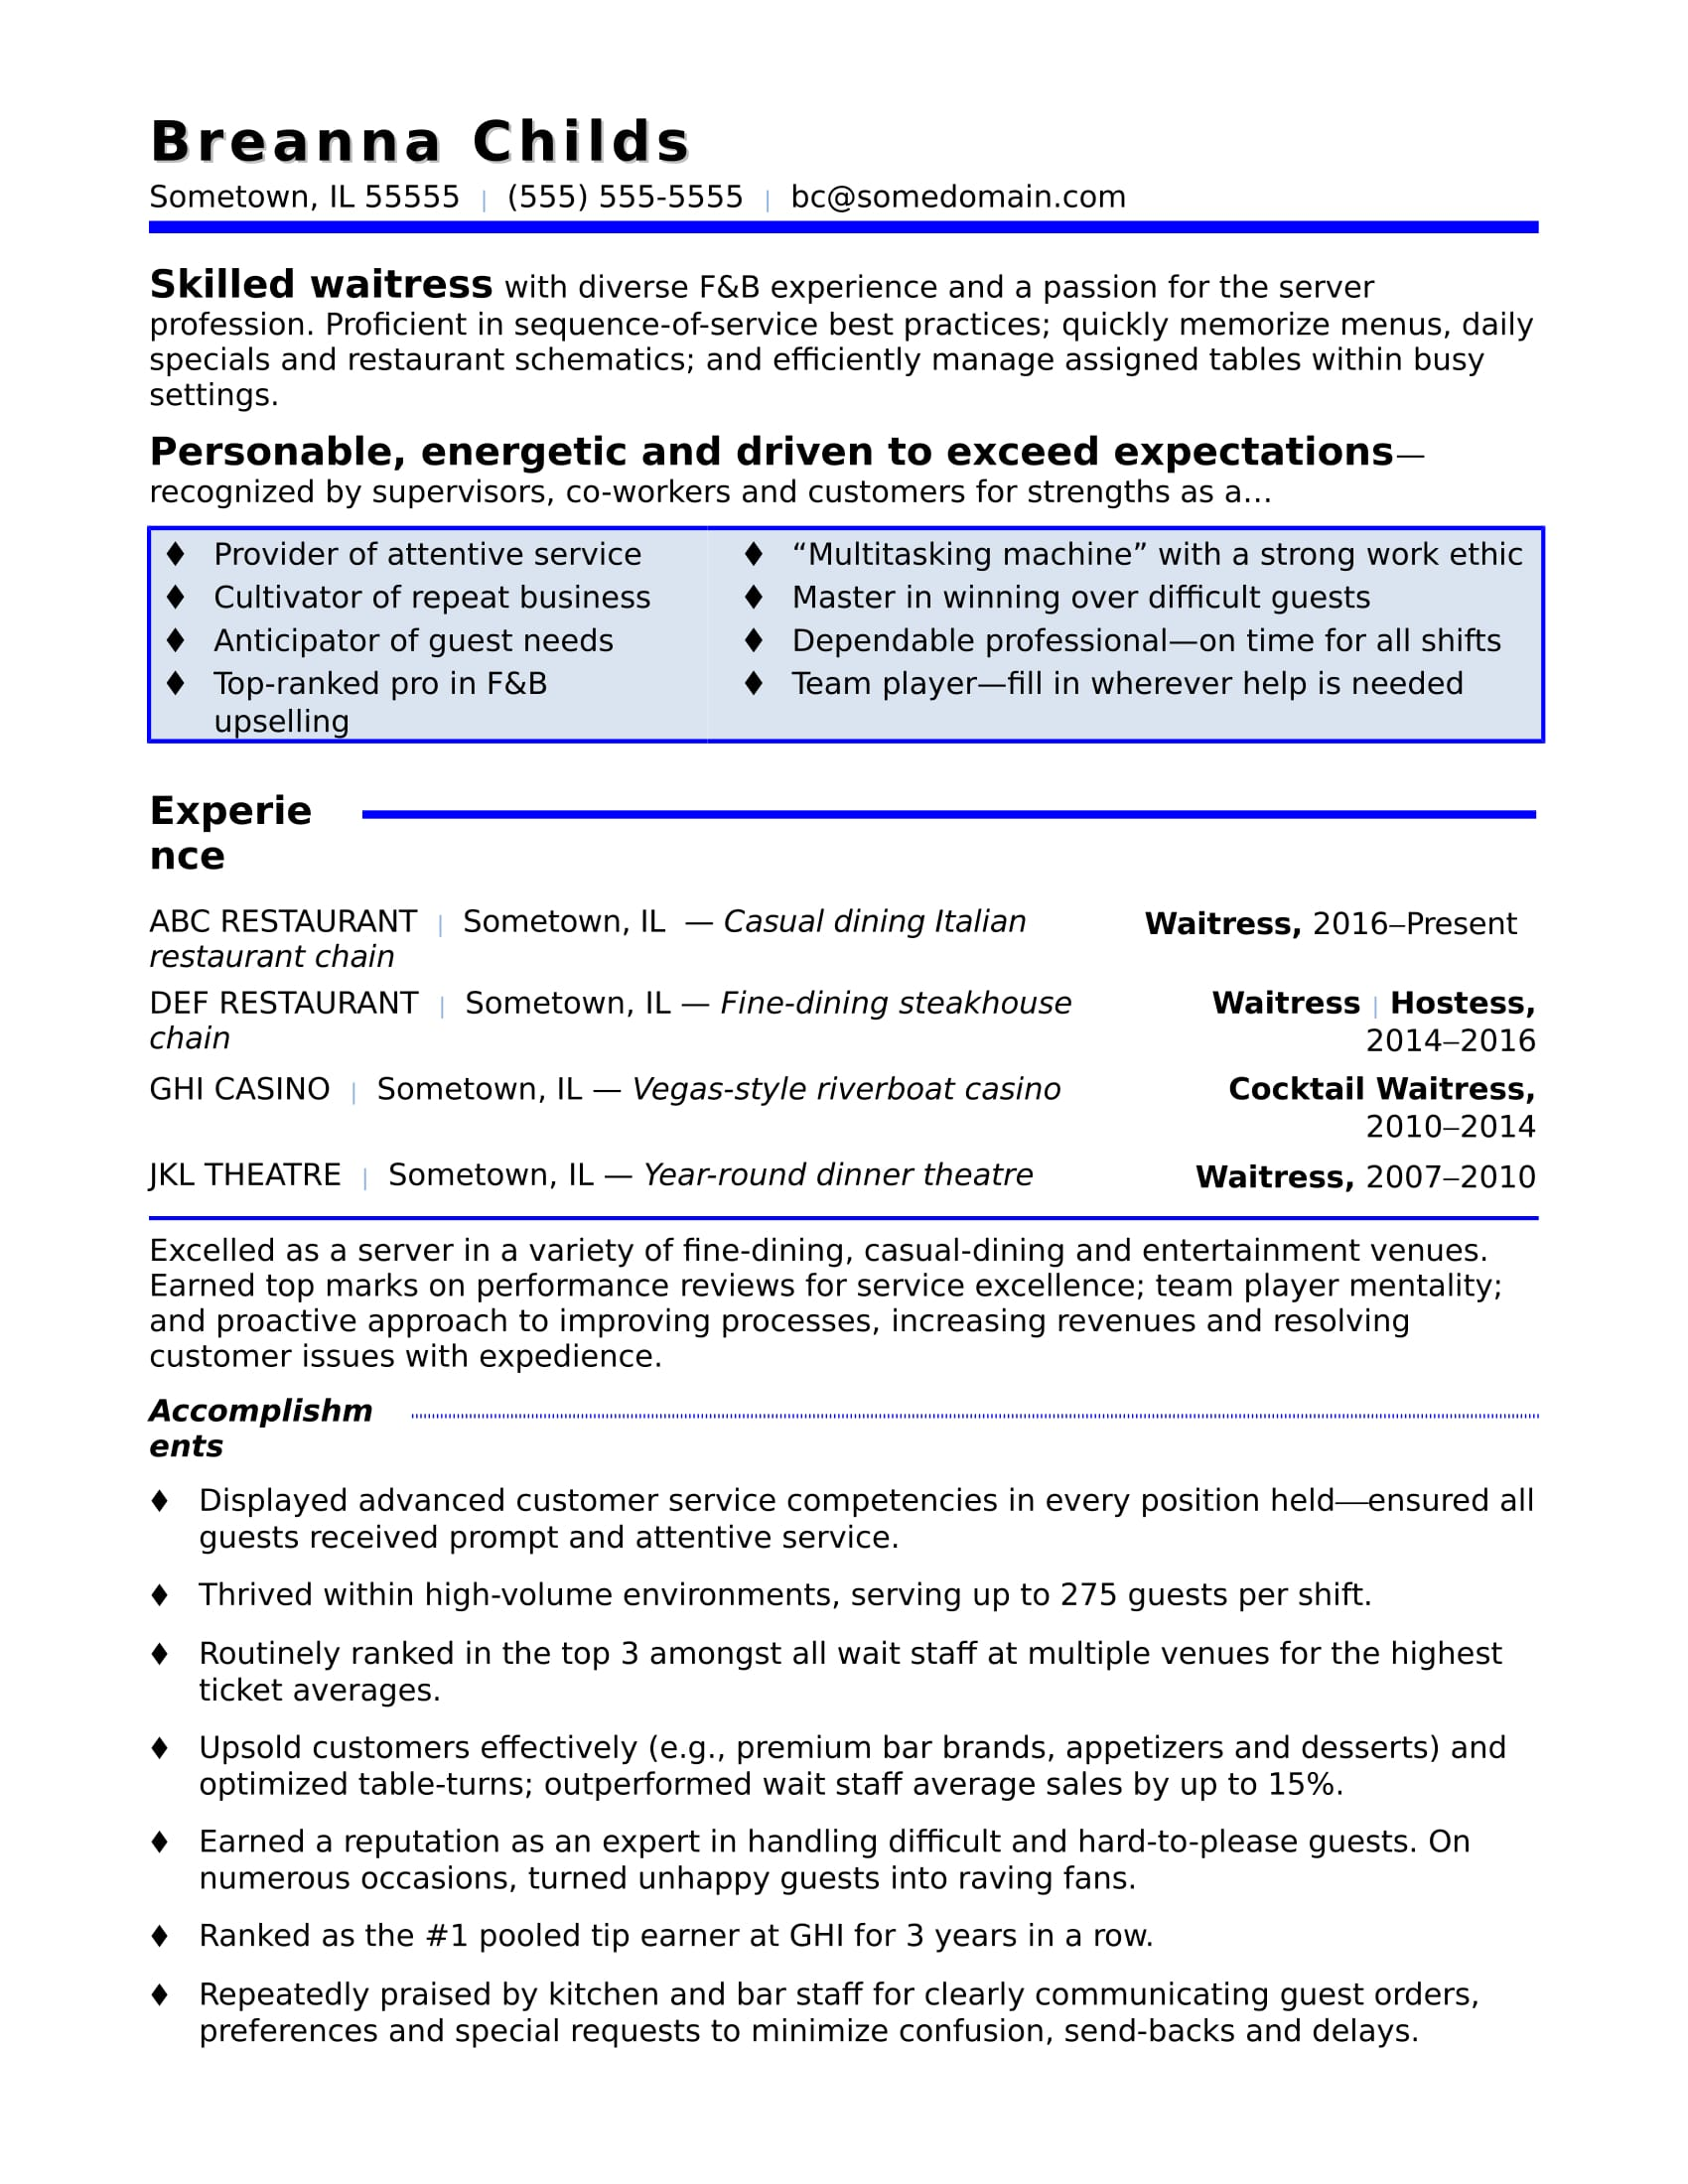 Lovely Waitress Resume Sample Pertaining To Waitress Resume Sample